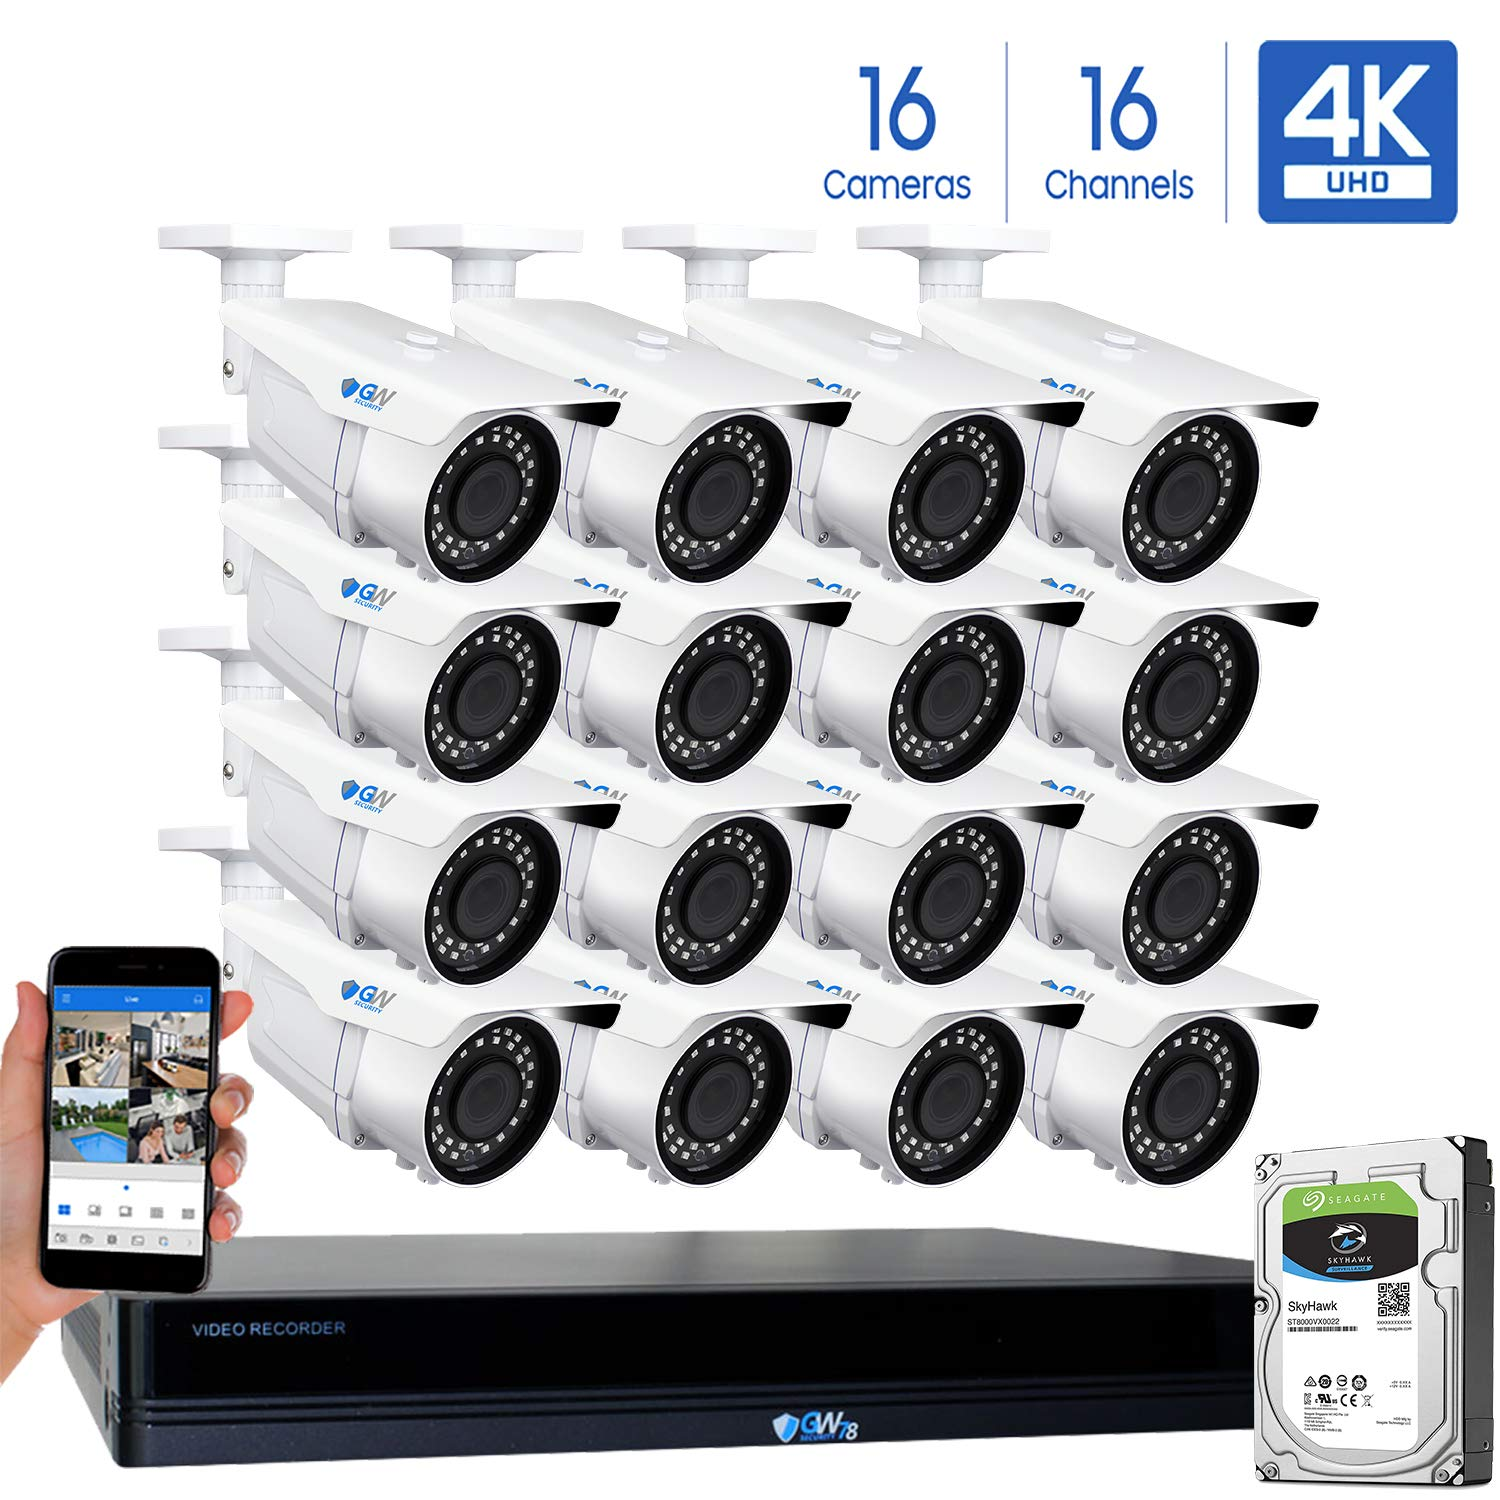 GW 16 Channel 4K NVR 8MP 3840×2160 H.265 PoE Security Camera System – 16 x UltraHD 4K 2.7 13.5mm Varifocal Zoom 196ft IR 2160p IP Cameras – 8 Megapixel Four Times The Resolution of 1080p Full HD